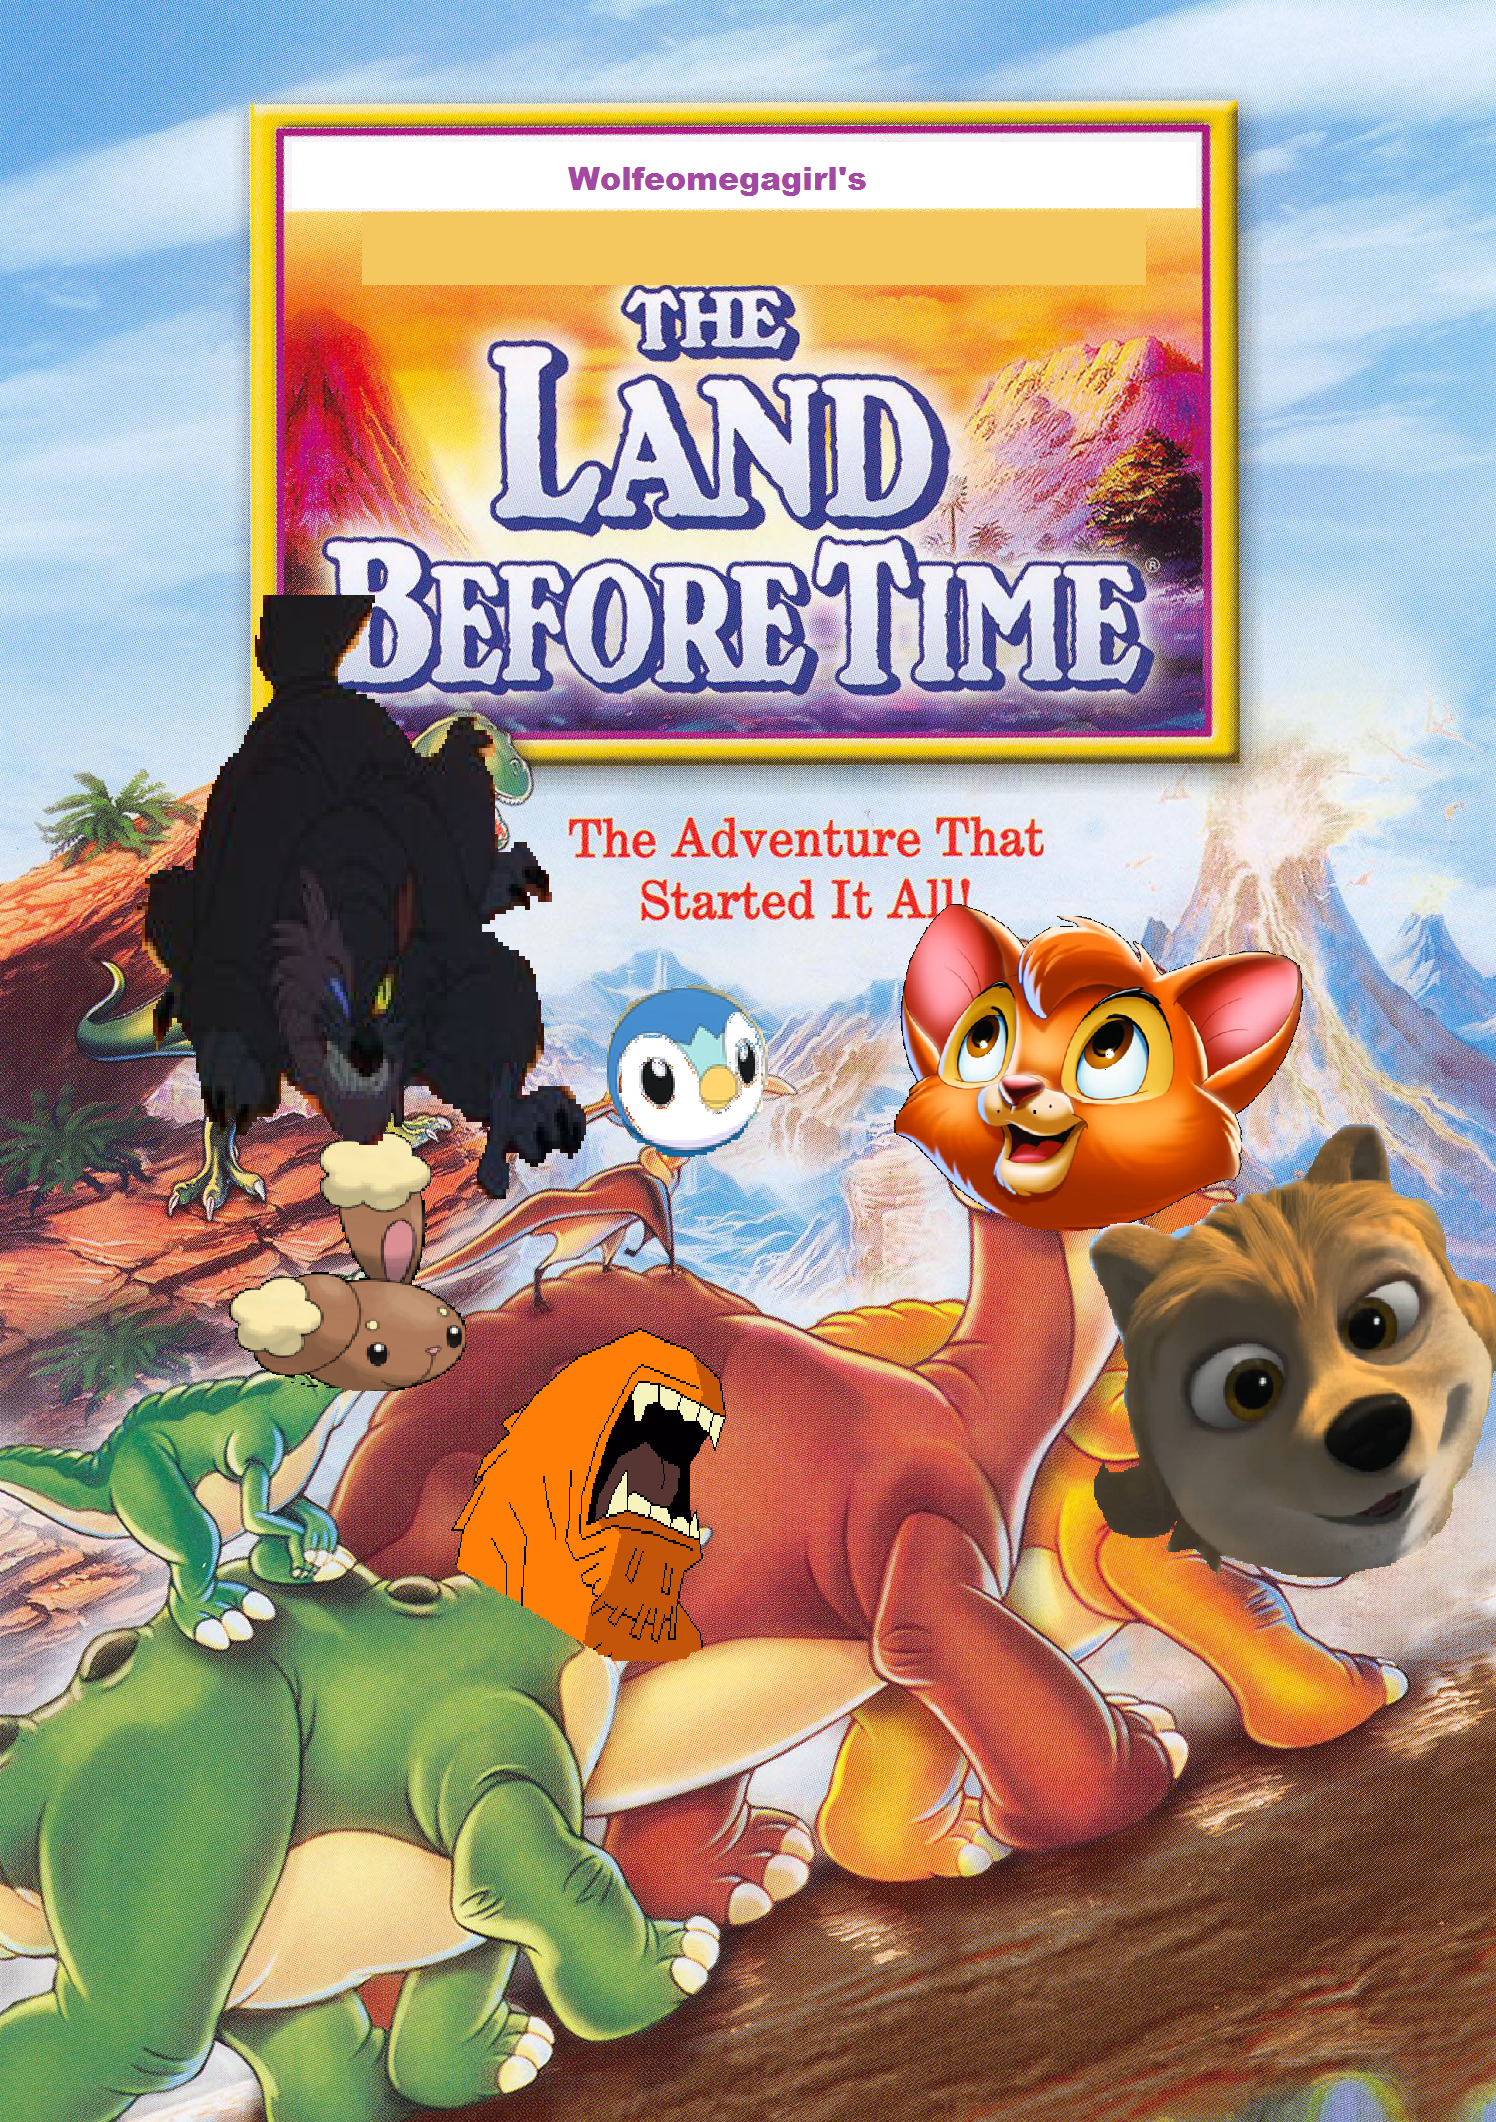 The Land Before Time: 25 Years Later & Better Than Ever